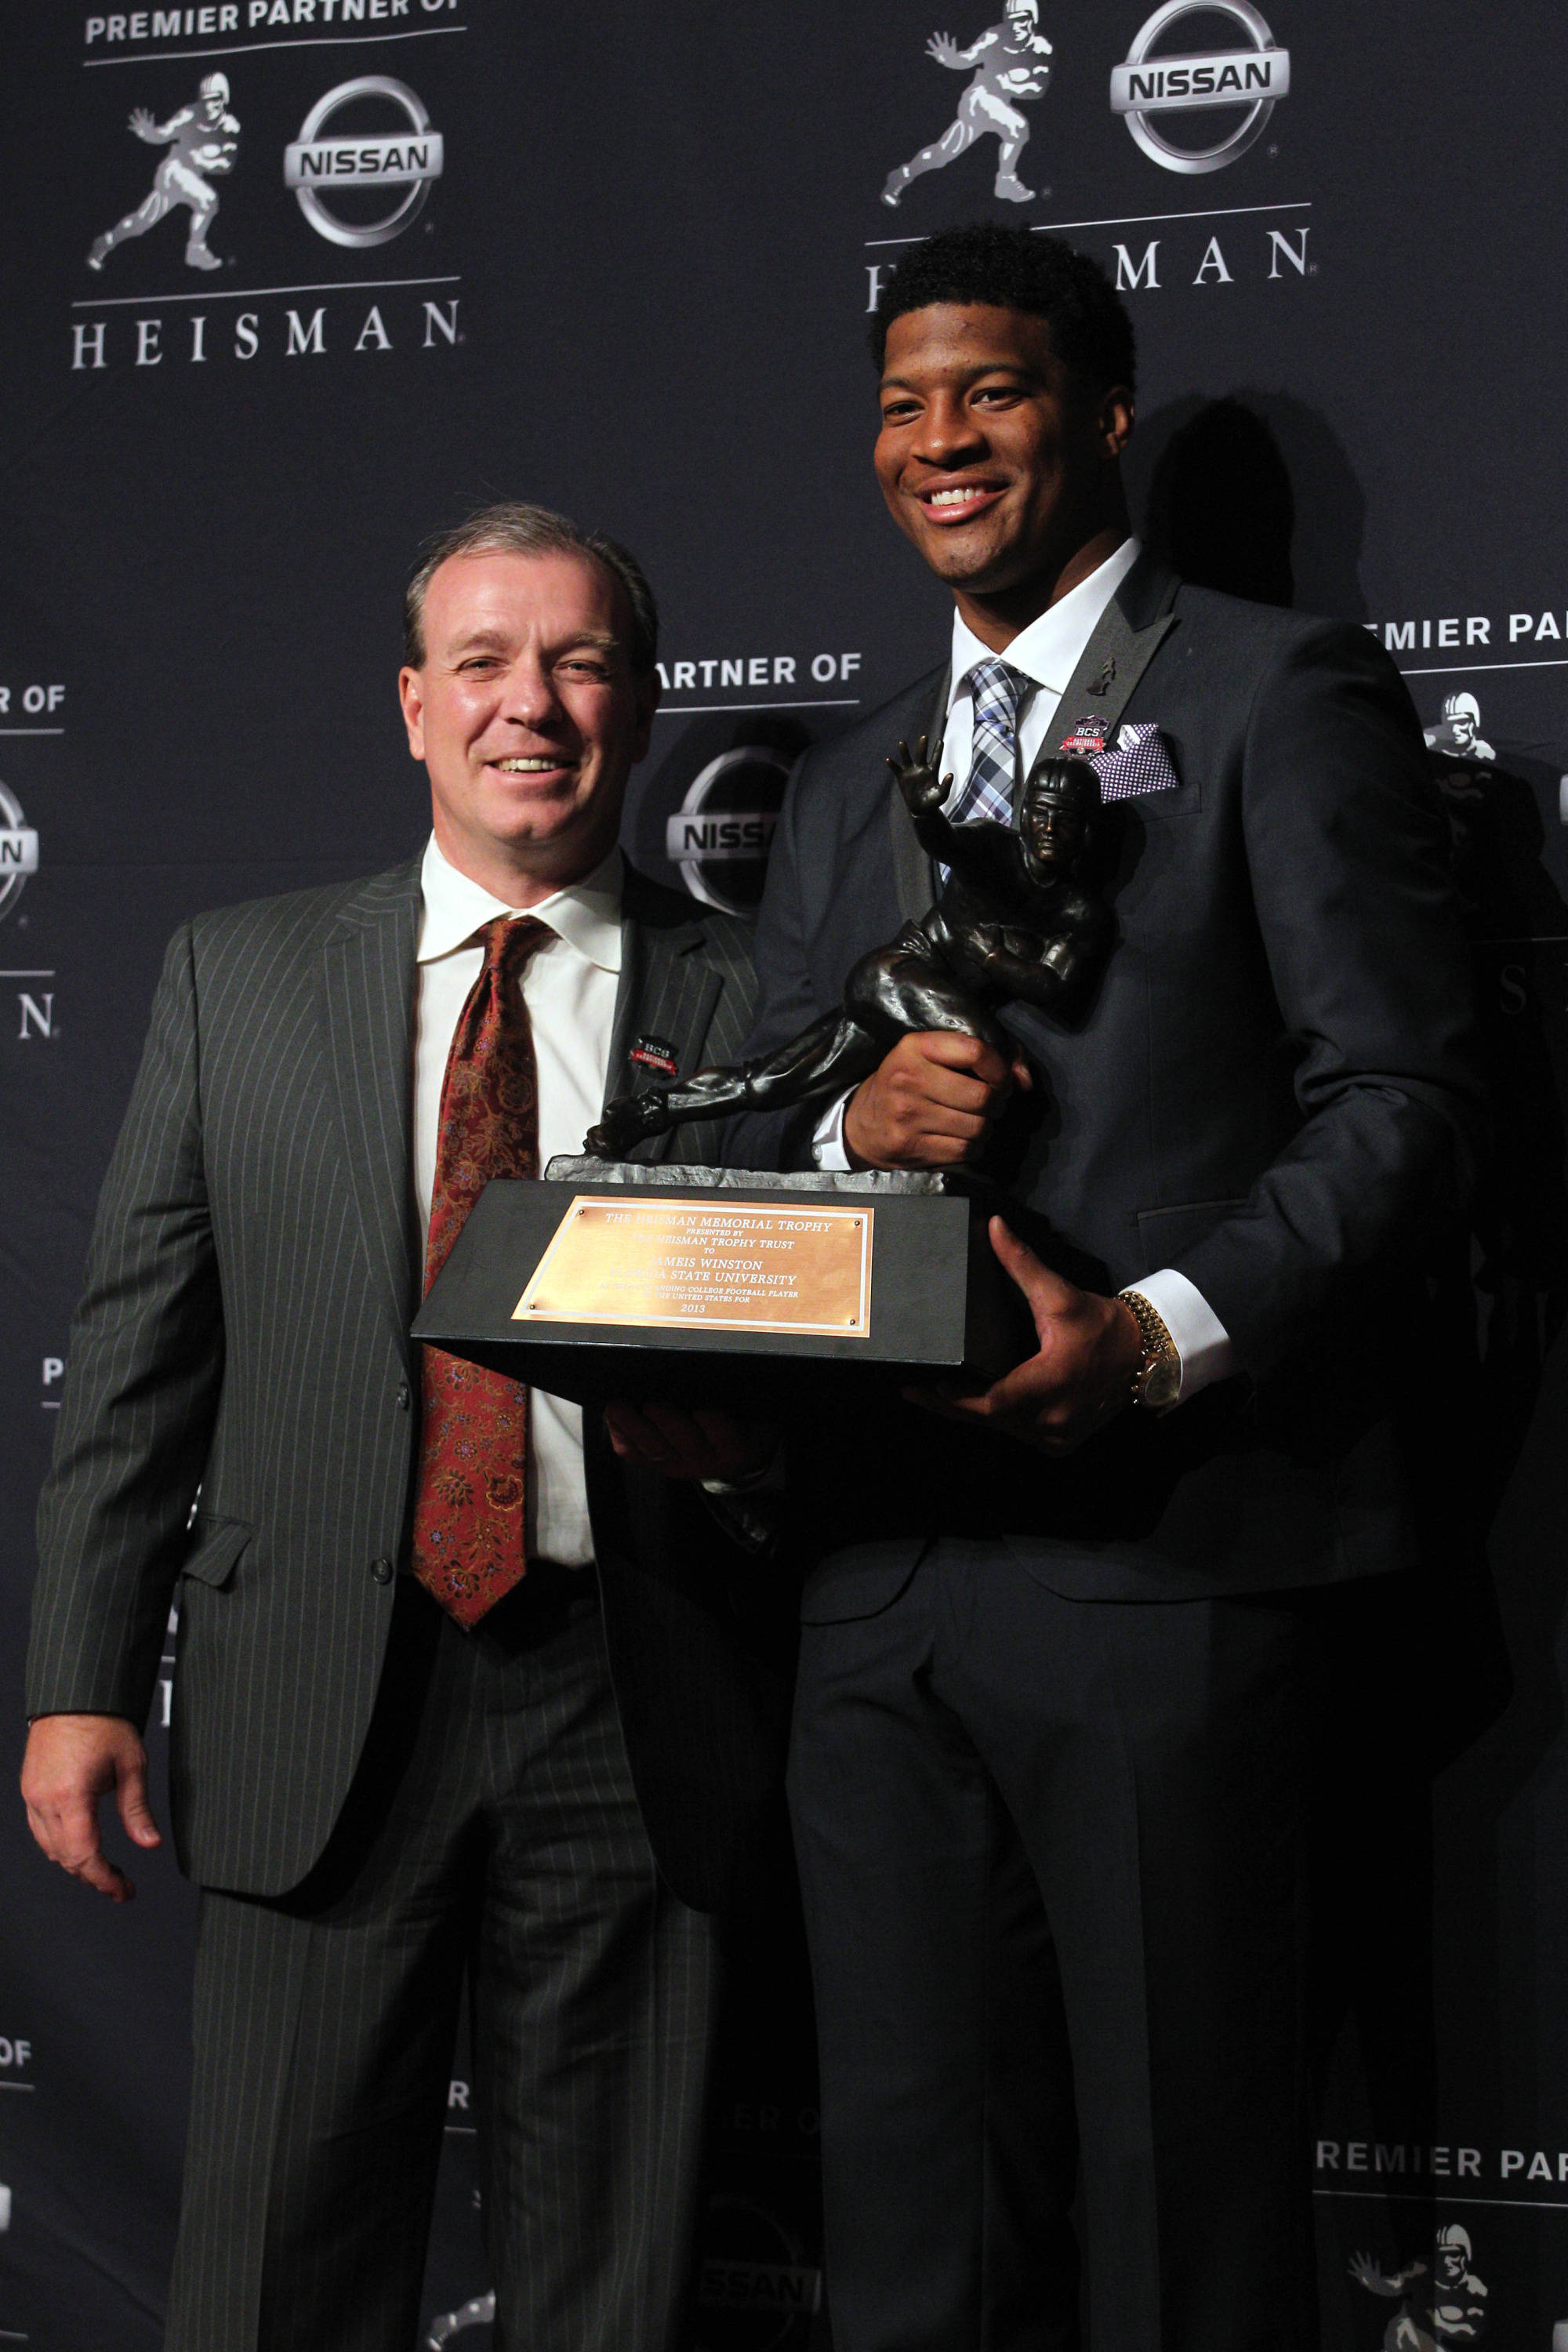 Dec 14, 2013; New York, NY, USA; Seminoles quarterback and 2013 Heisman Trophy winner Jameis Winston (right) and Seminoles head coach Jimbo Fisher pose with the trophy during a press conference. Brad Penner-USA TODAY Sports